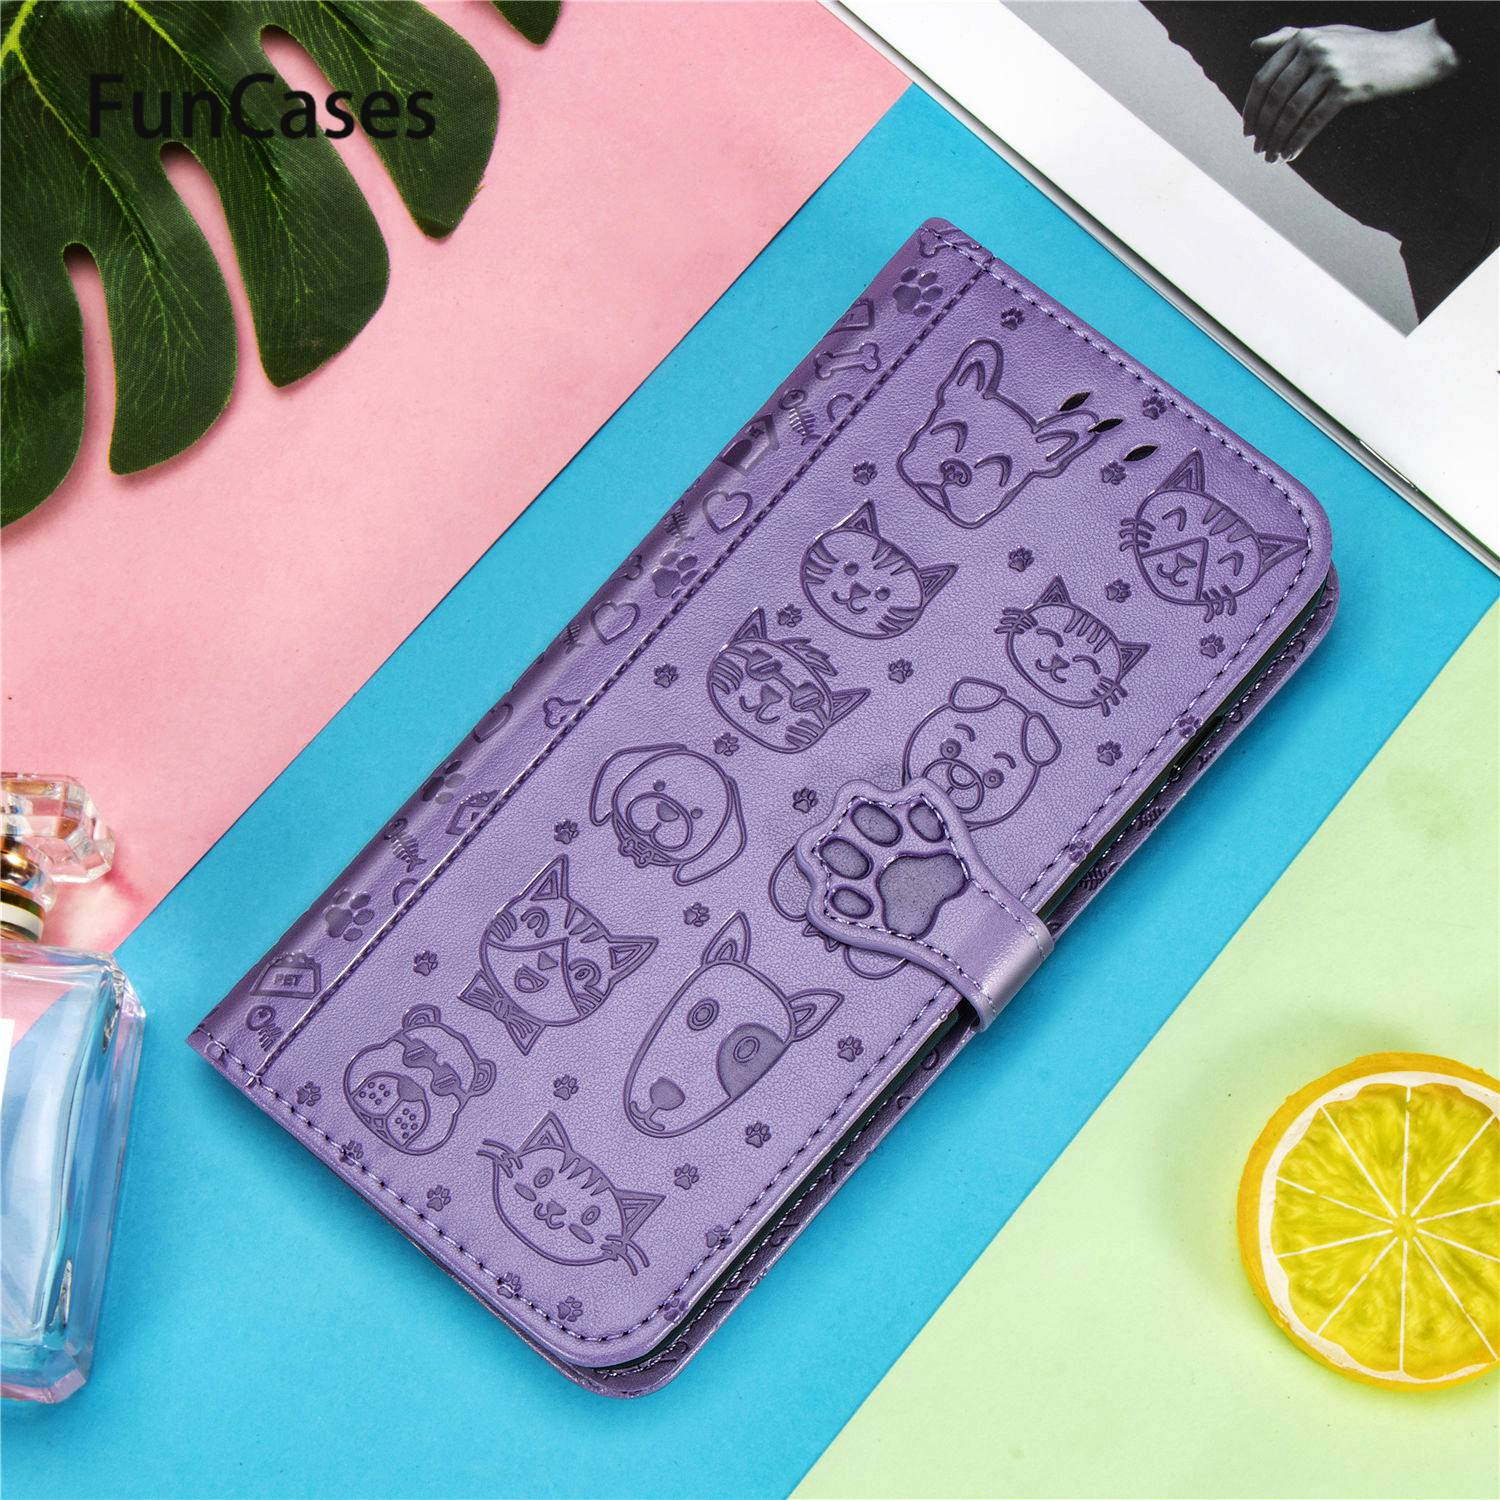 Cat Covers For Huawei Honor 10i Book Case P30 Lite Nova 5T P Smart Plus 2019 P40 Pro Enjoy 9S Mate 30 20i Y7P Y9 Prime 20S 20 Z(China)